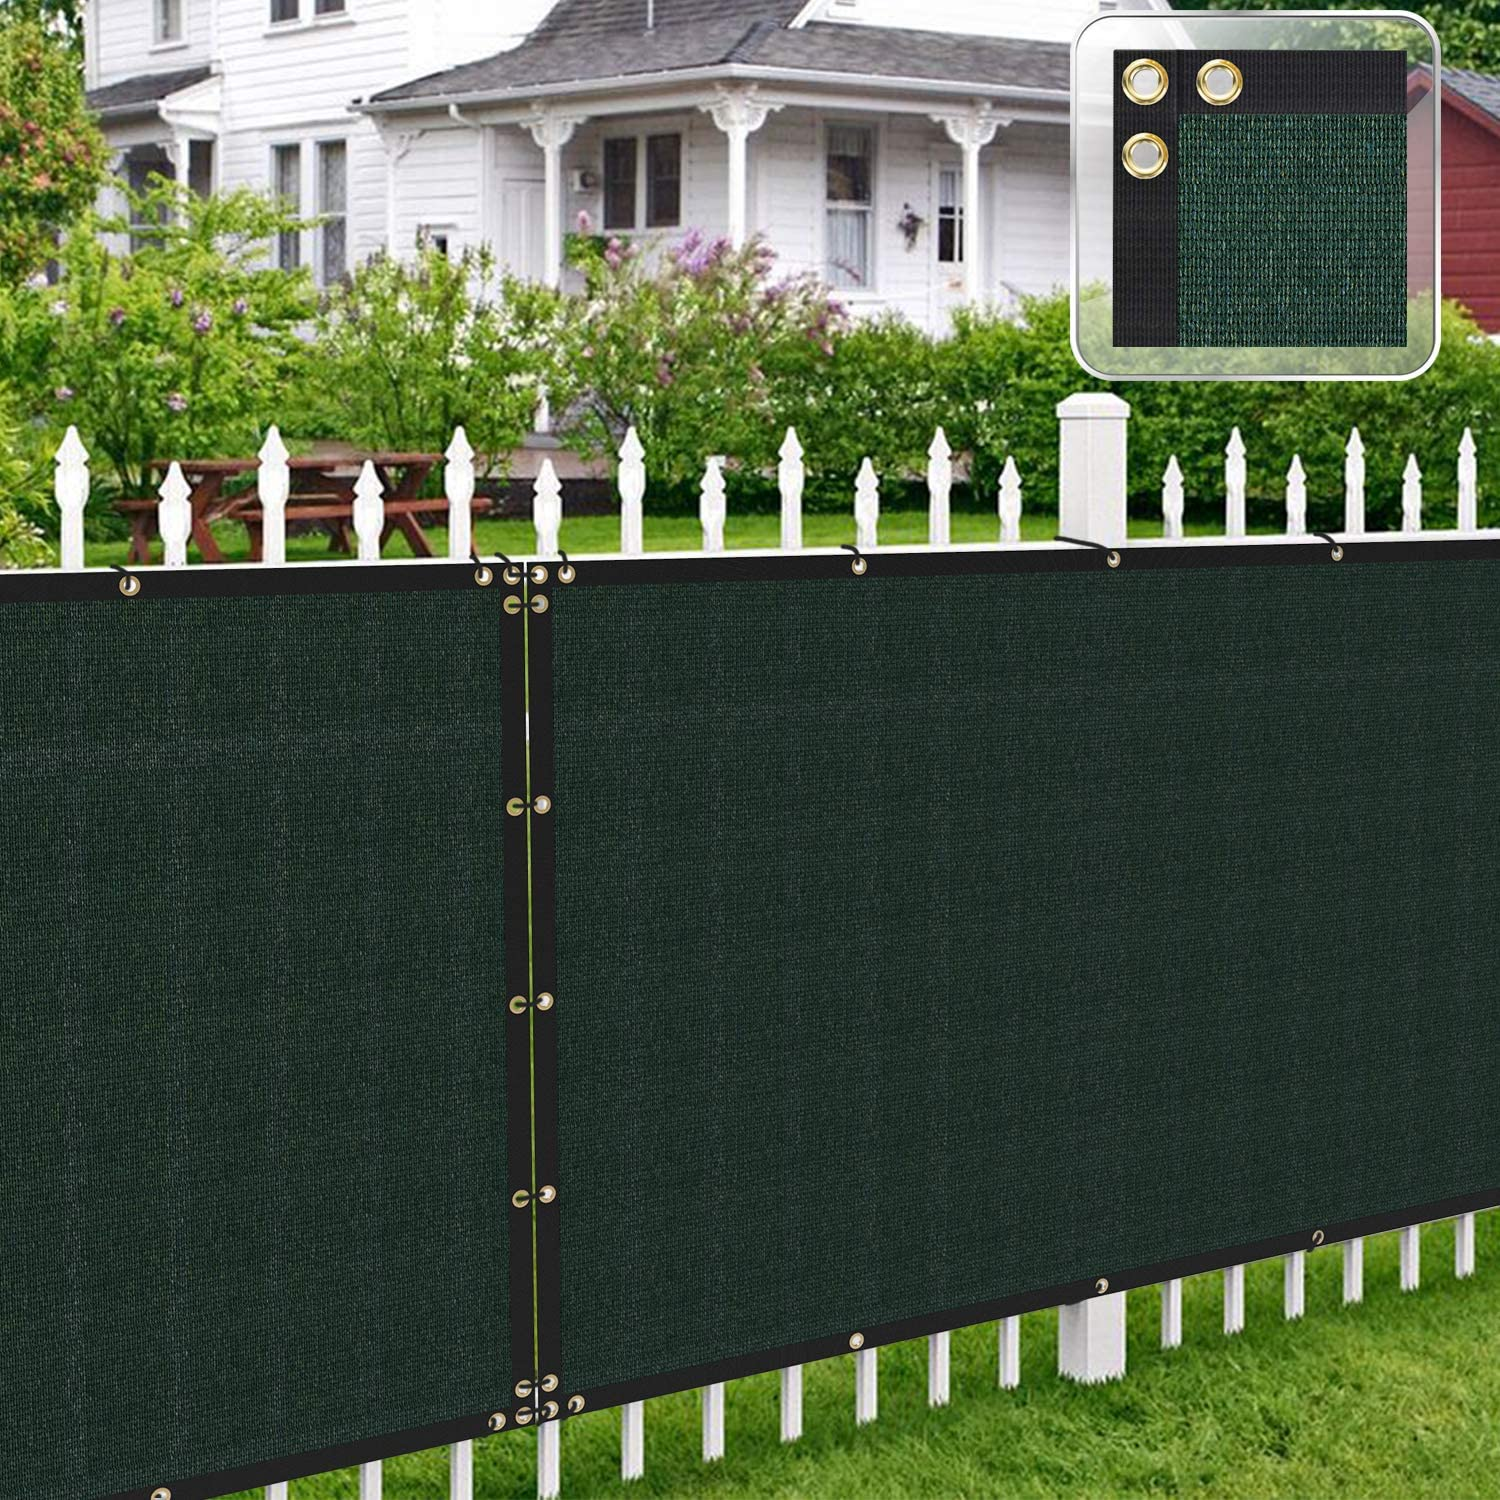 Patio Fence Privacy Cheap Screen Green New product 8' Shade x 45' Pergola Ca Cover